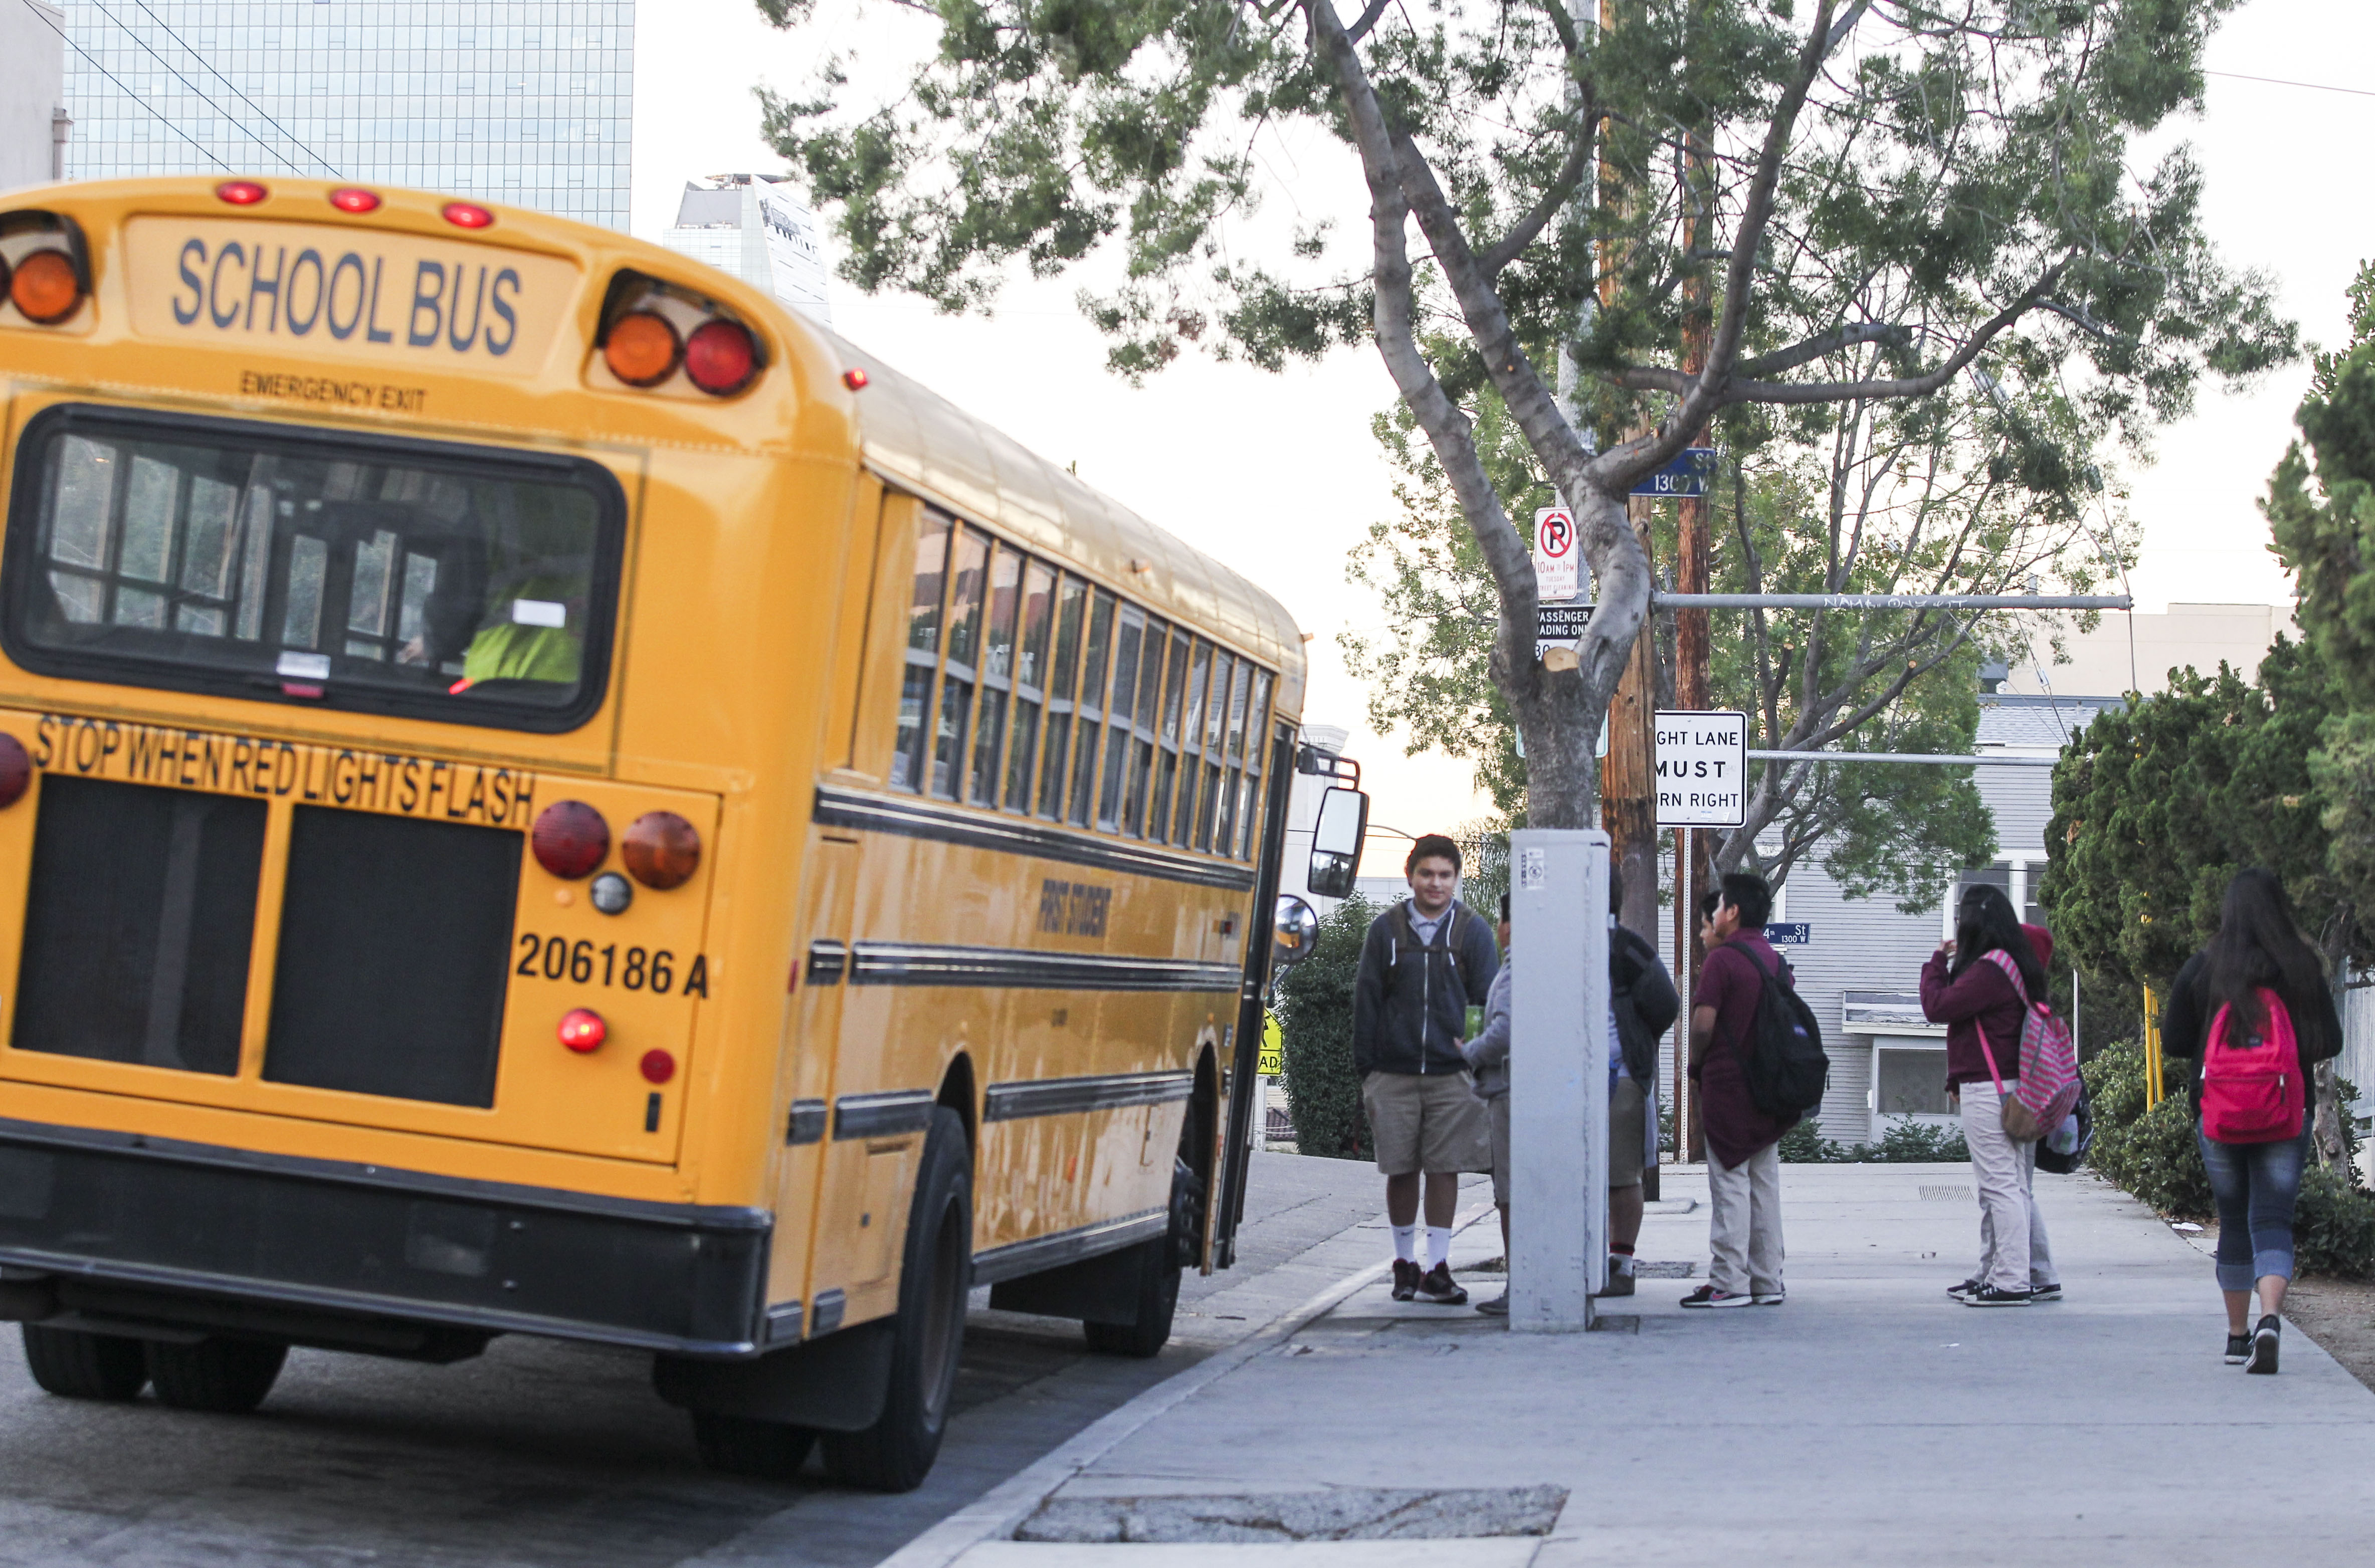 Students line up for a school bus outside a school in Los Angeles on December 16, 2015.